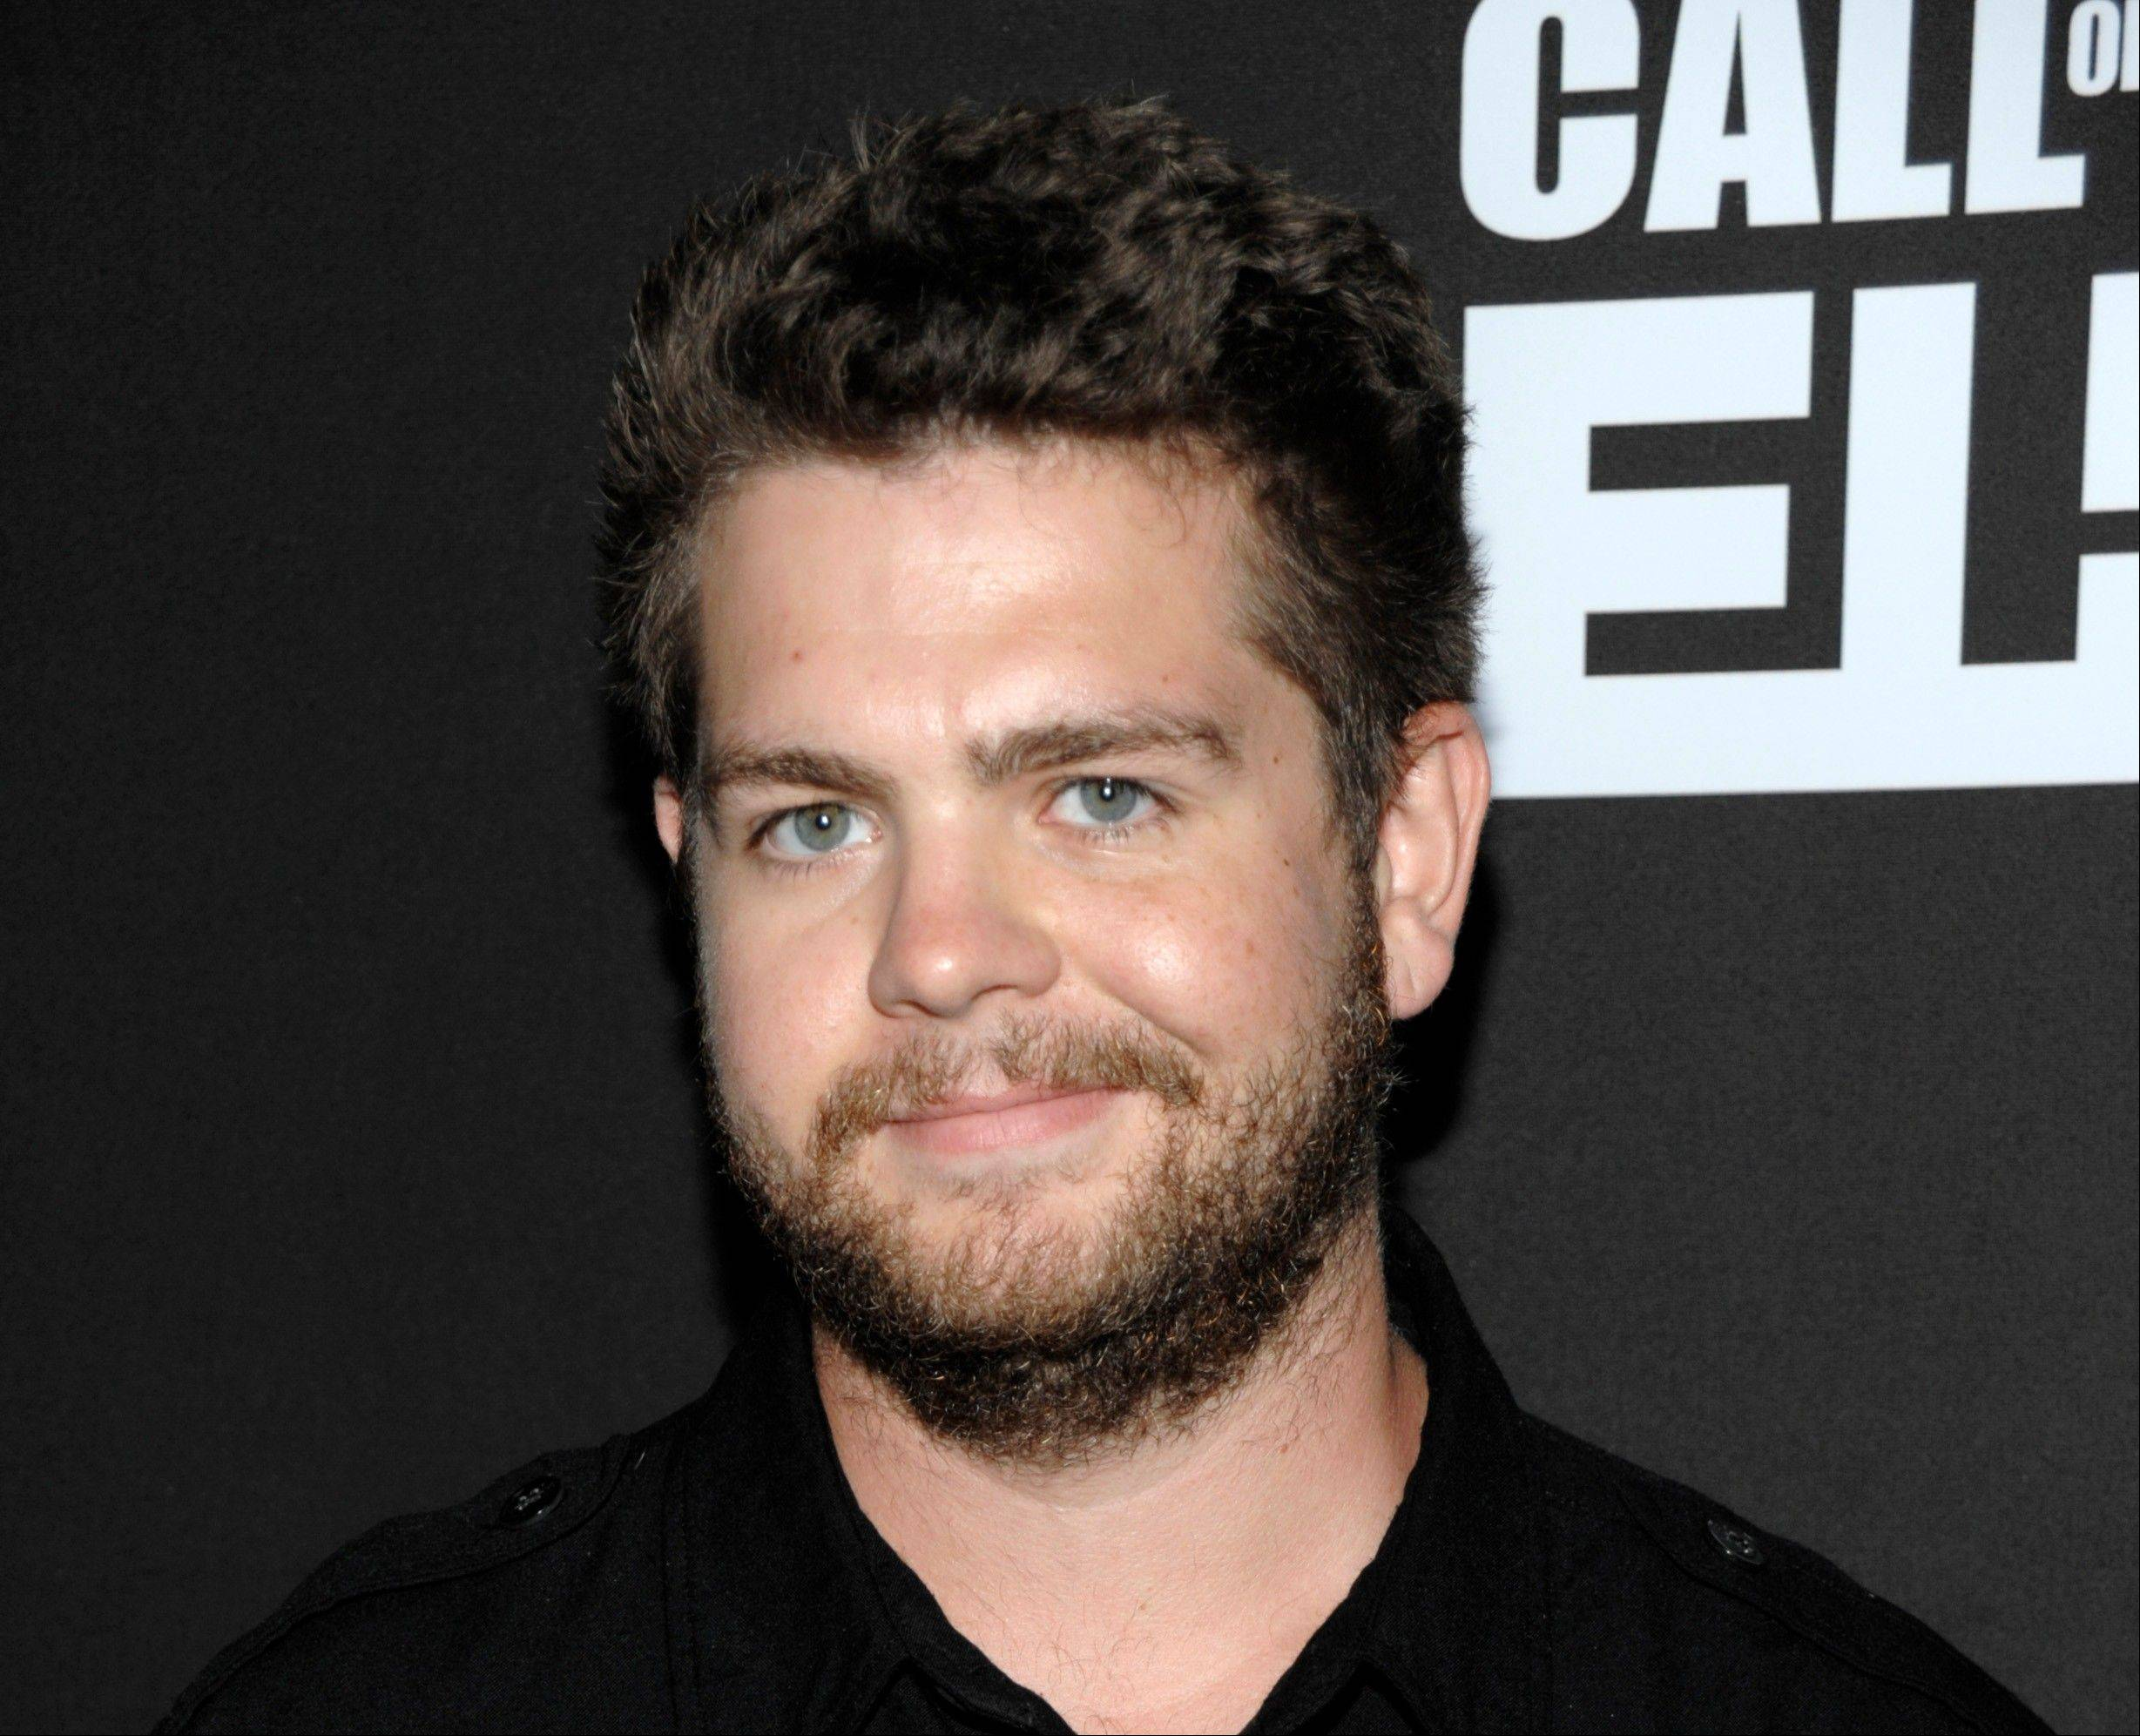 Jack Osbourne is facing a diagnosis of multiple sclerosis. The former reality star and son of Ozzy and Sharon Osbourne revealed his health crisis in an interview with People released Sunday.